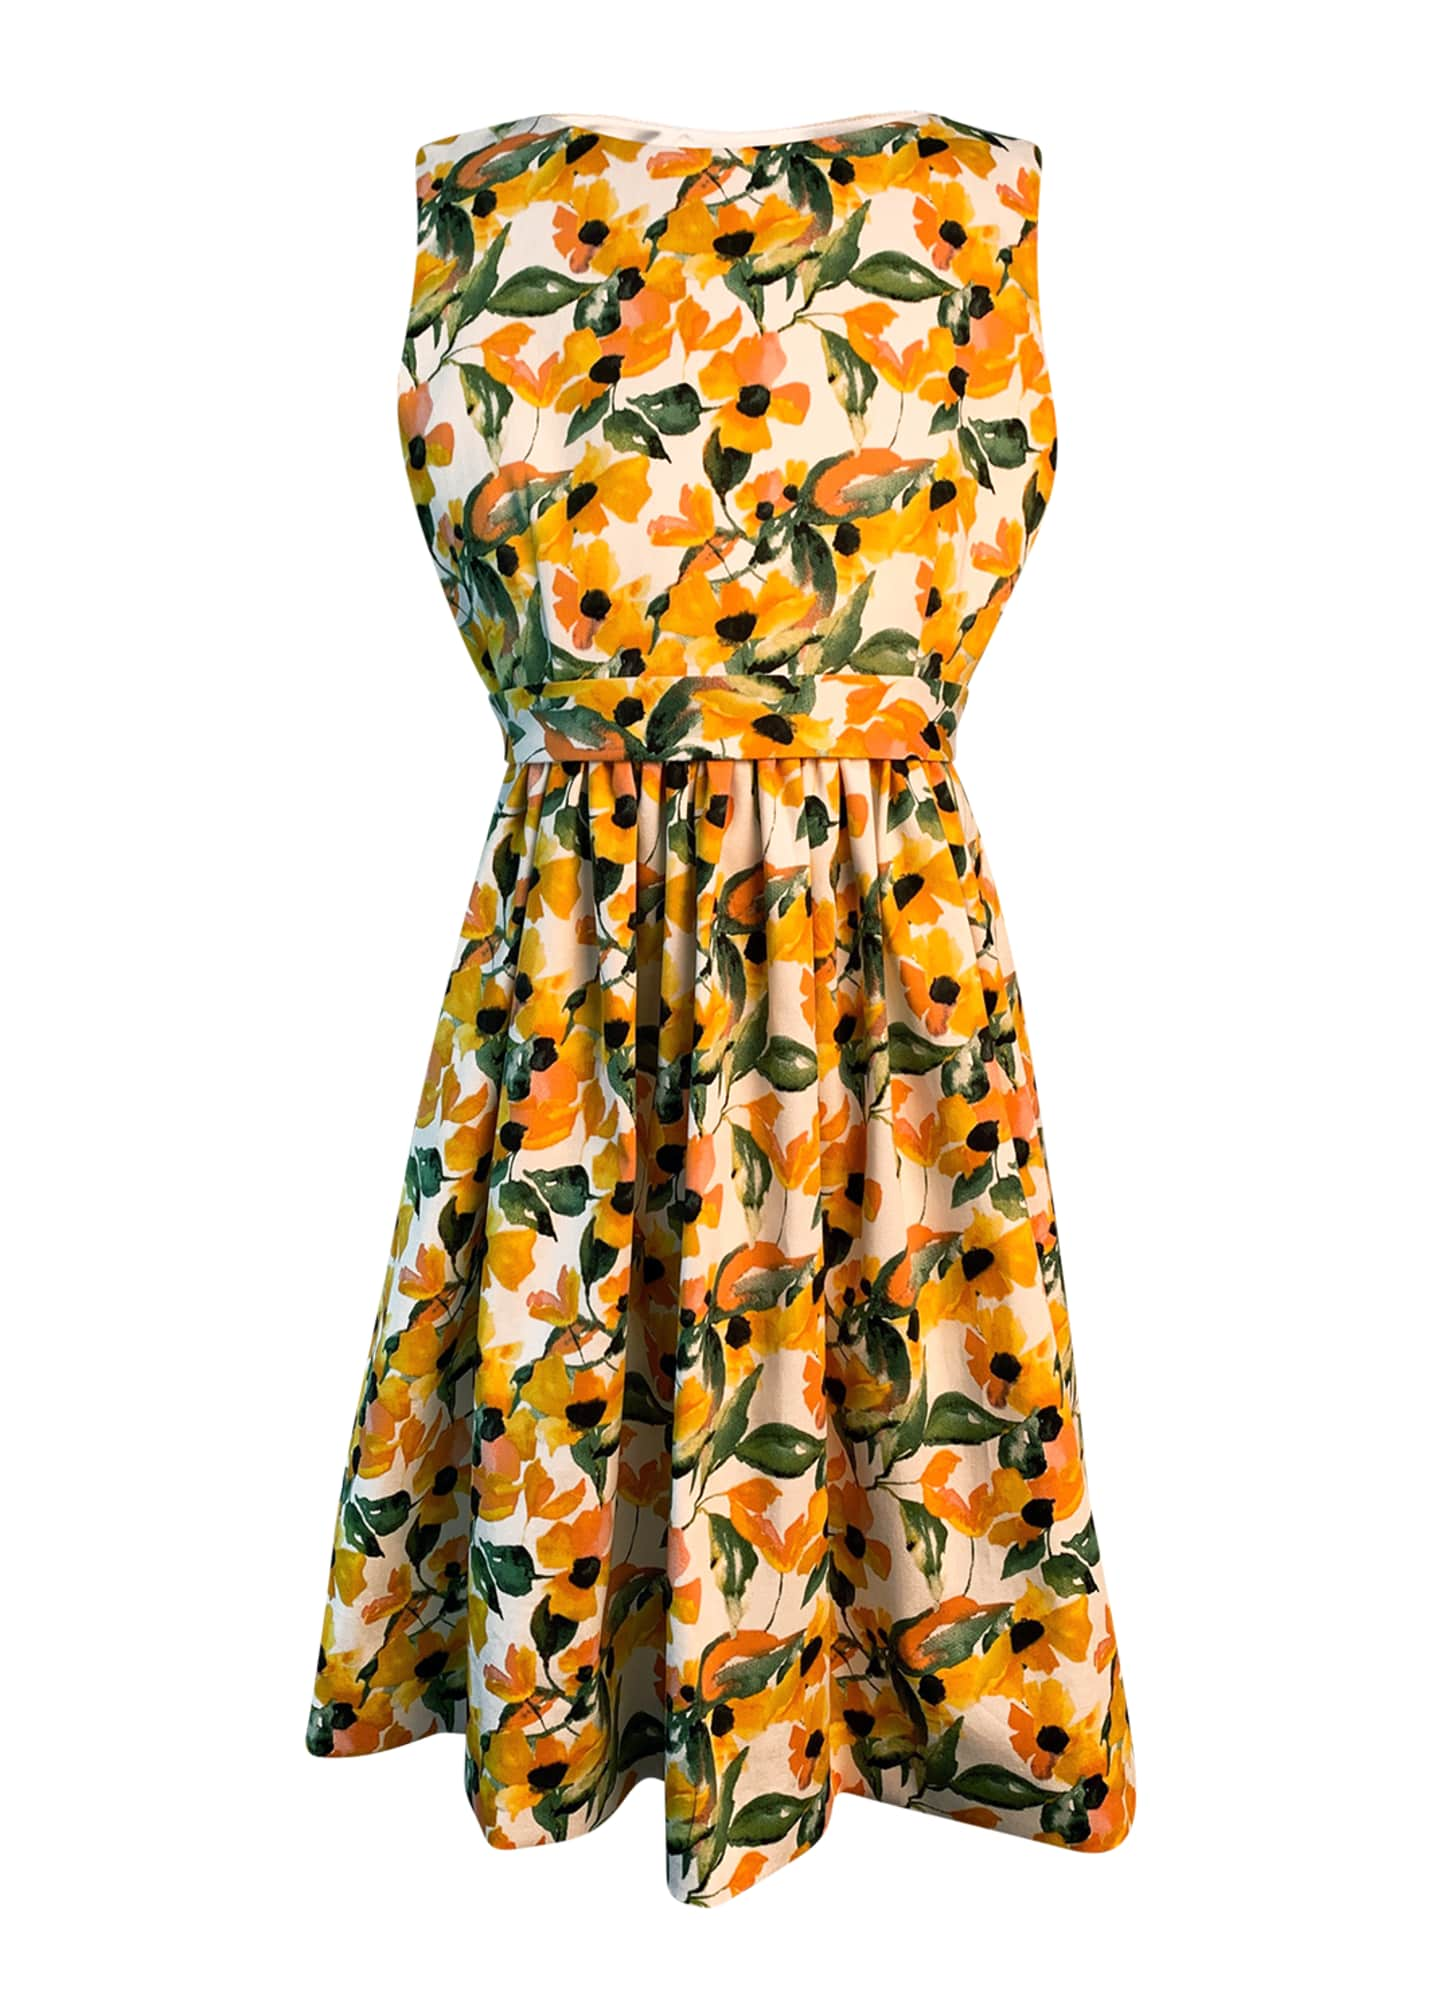 Image 1 of 2: Girl's Floral Print Sleeveless Dress, Size 4-6